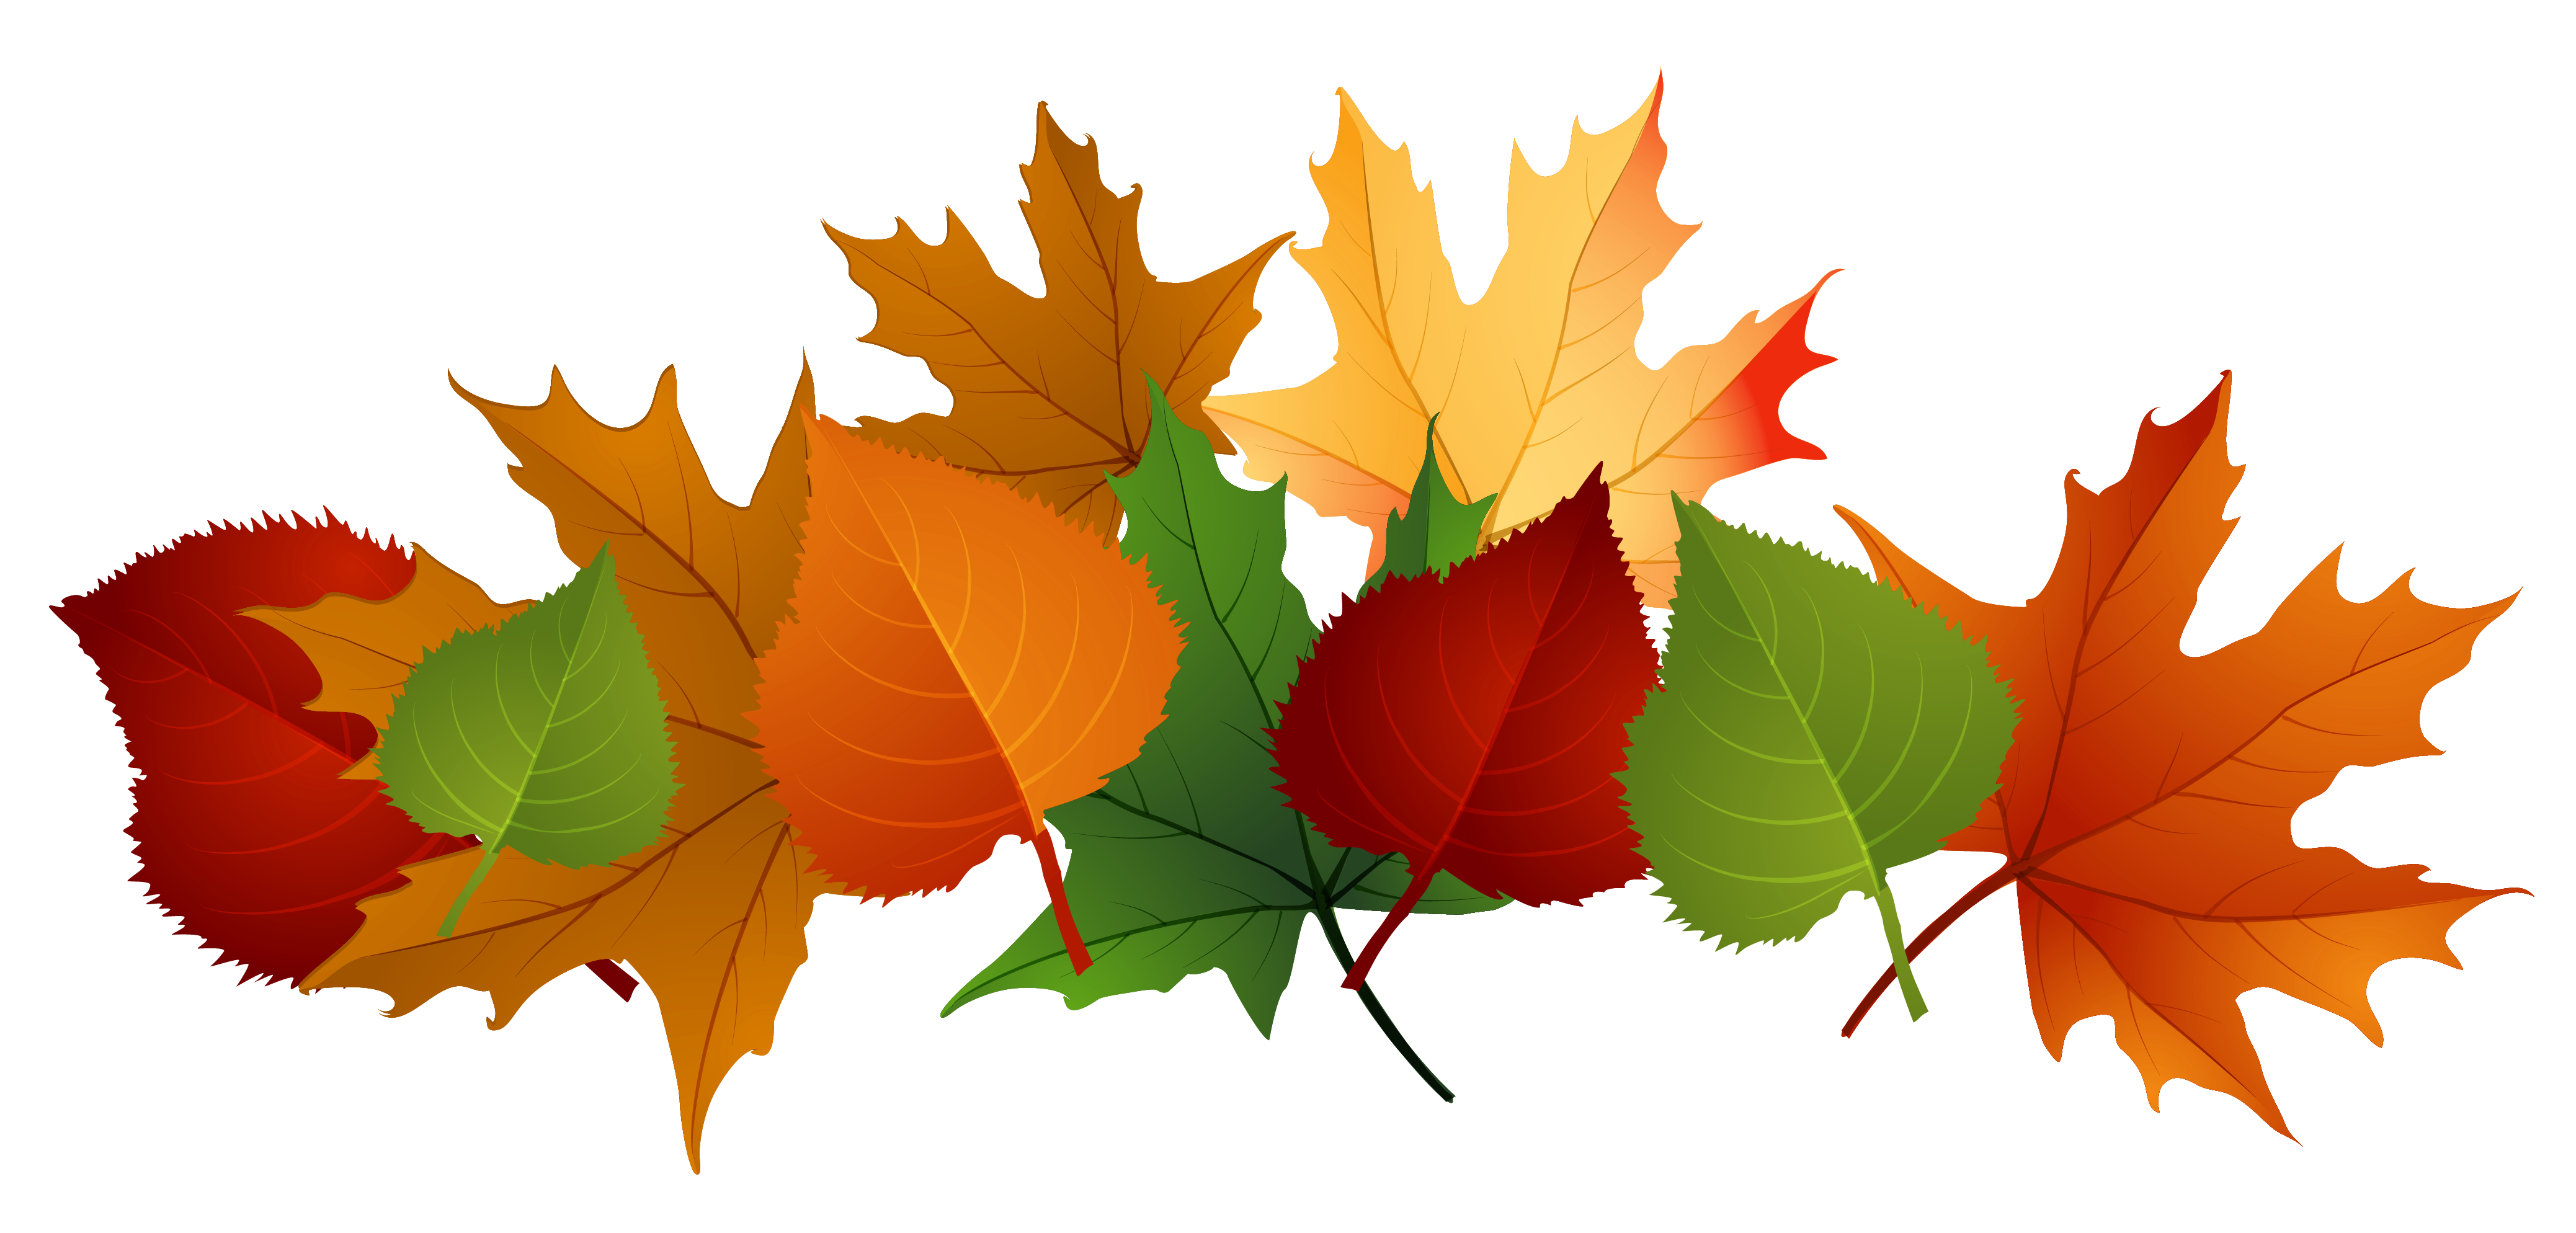 Free clipart thanksgiving borders png freeuse library Fall And Thanksgiving Clipart at GetDrawings.com | Free for personal ... png freeuse library